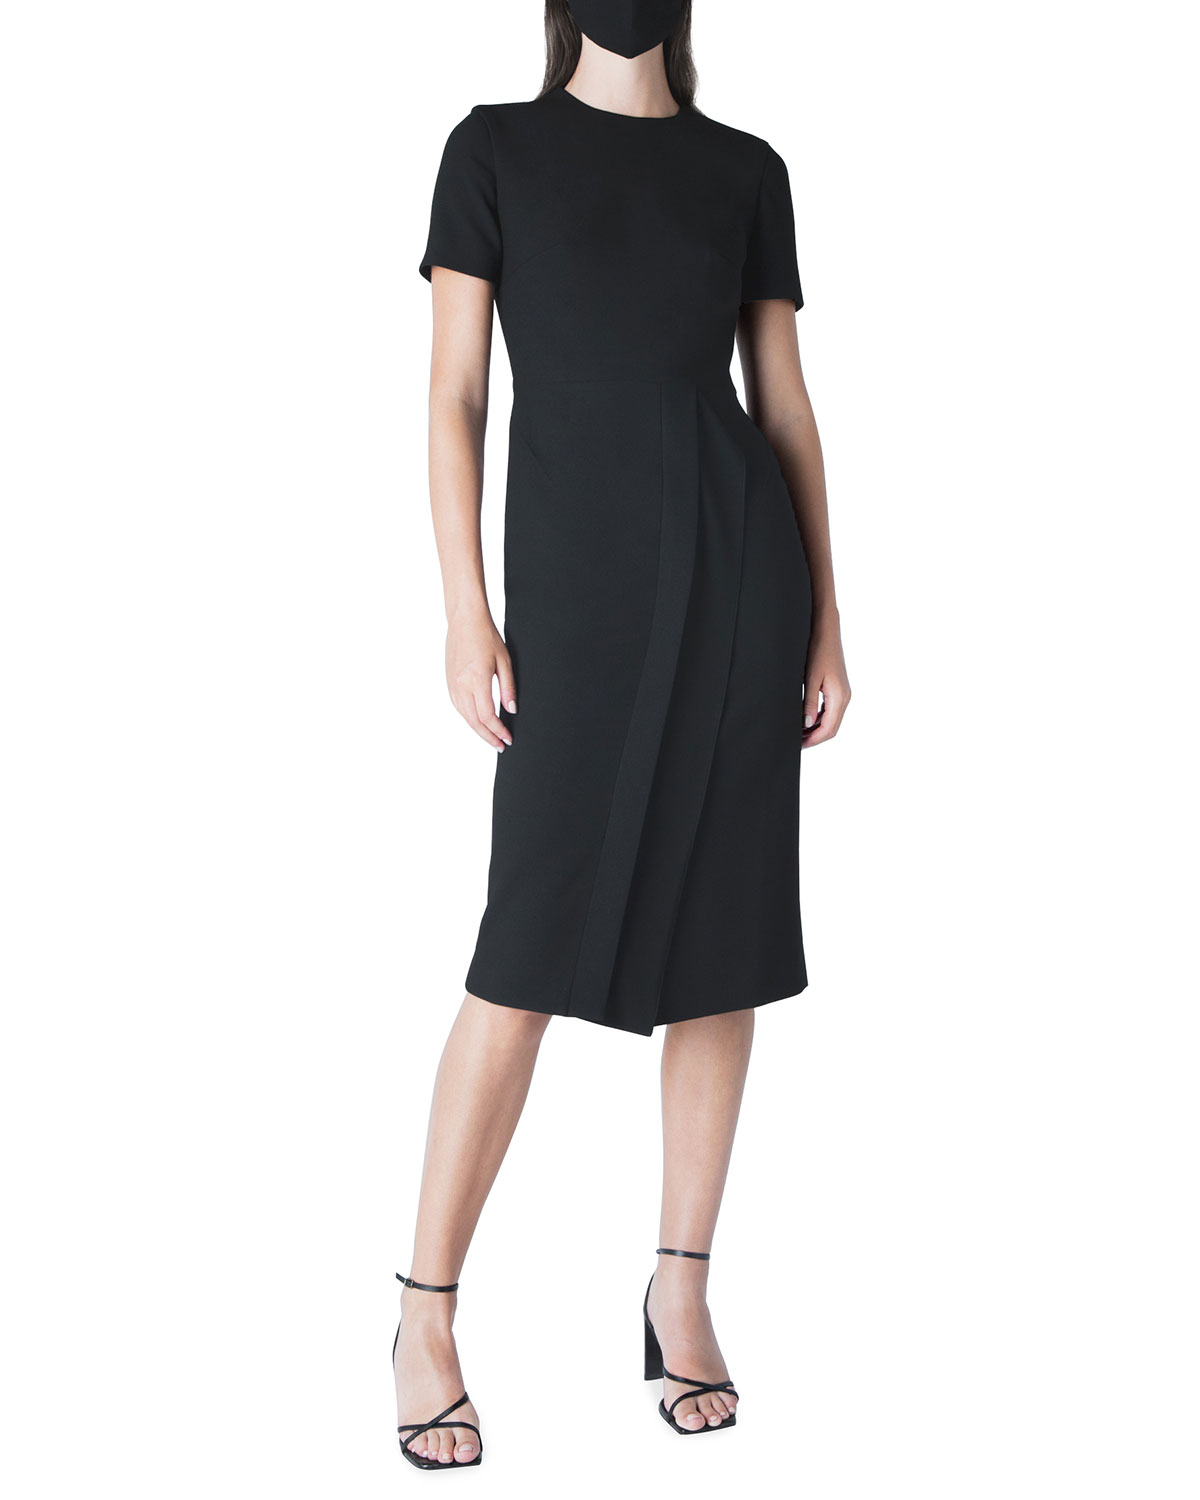 Roland Mouret Linings PRIMLEY DOUBLE PLEATED SHEATH MIDI DRESS W/ FACE MASK